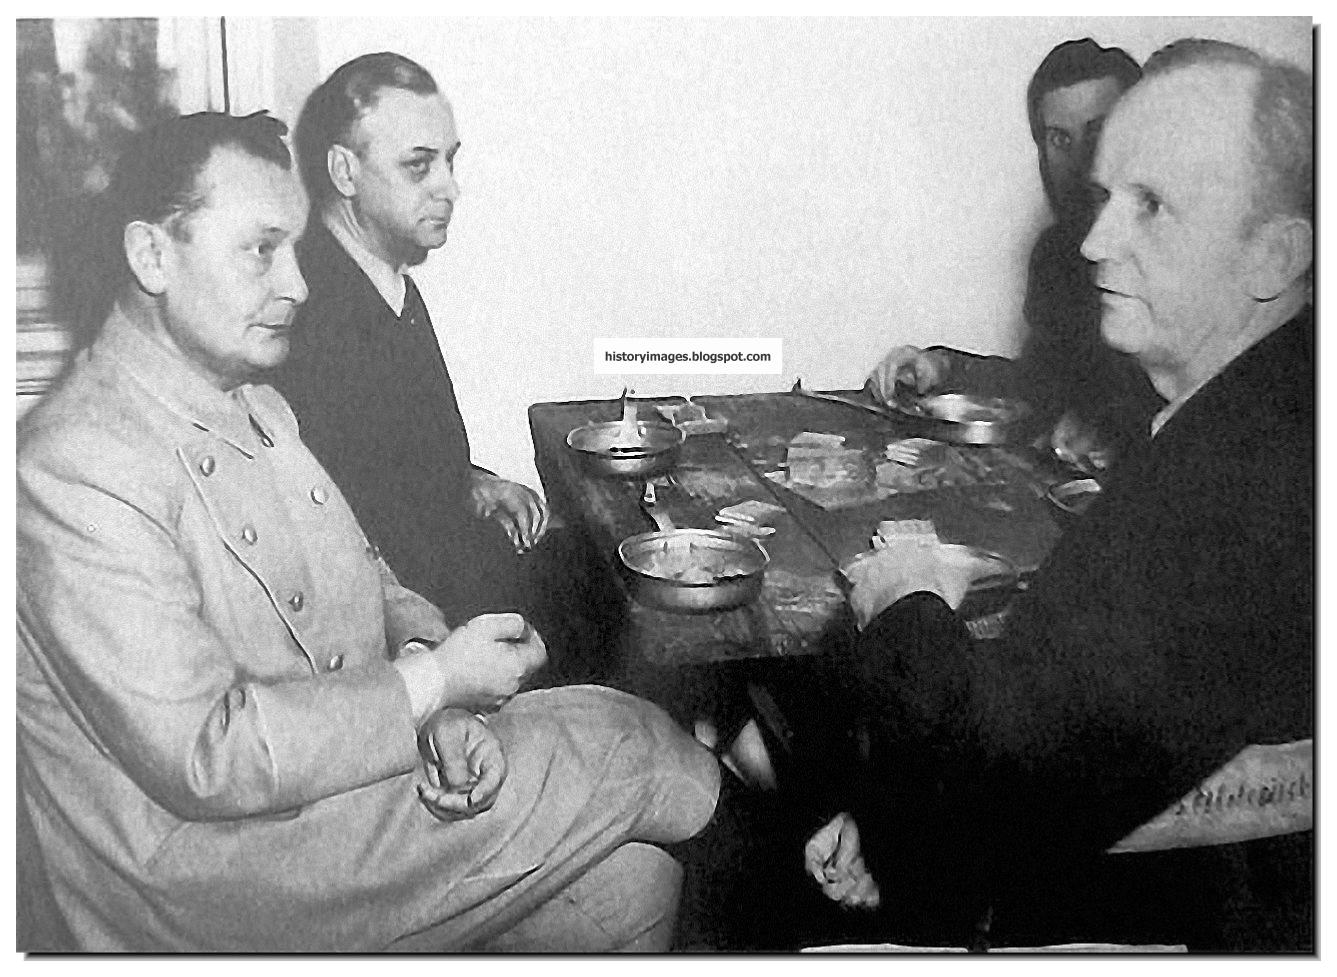 history in images pictures of war history ww2 nuremberg hermann goering has supper during the trials sidelights during nuremberg trial